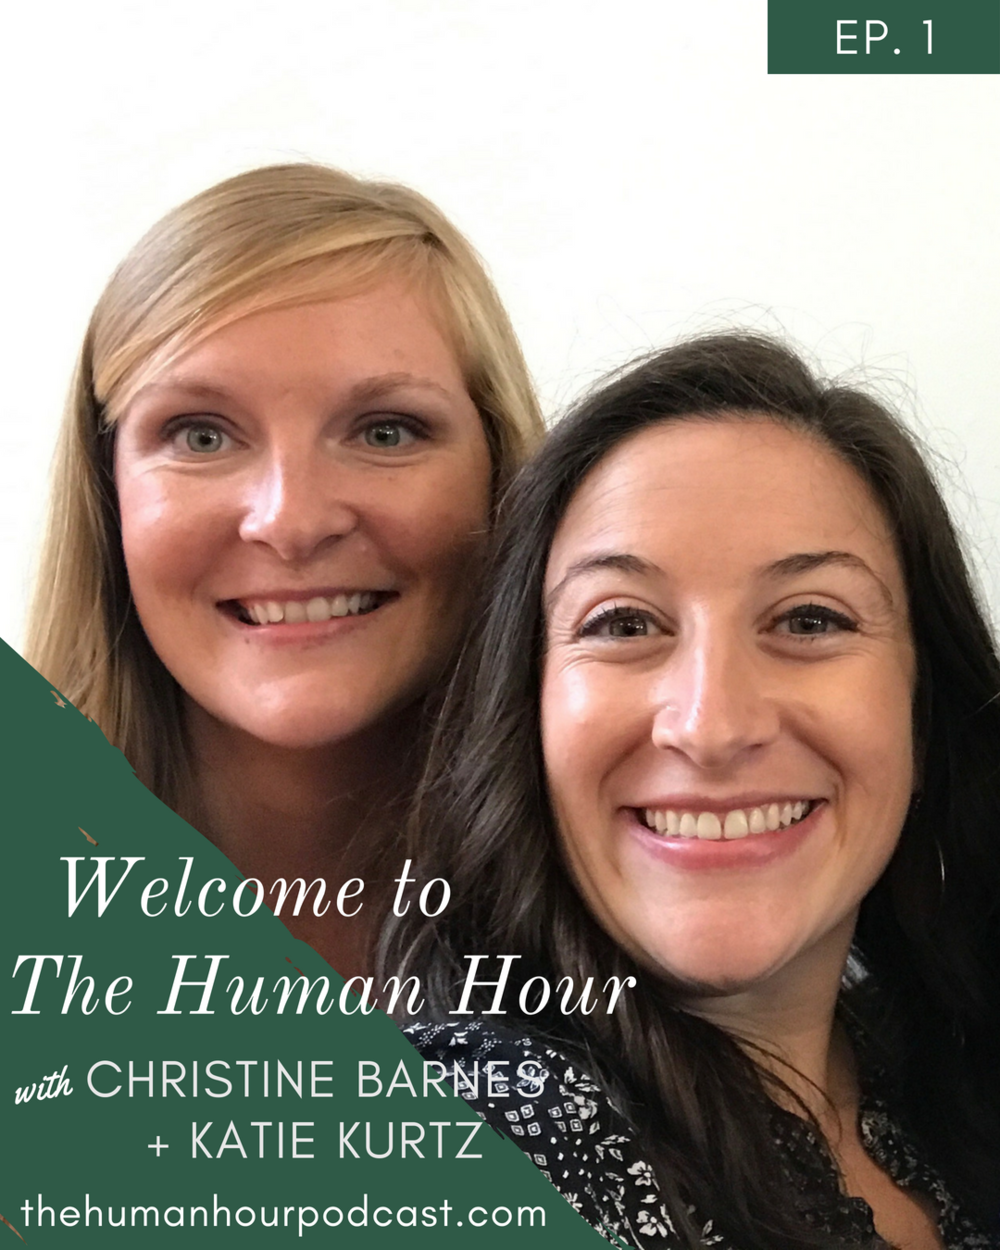 S1 E1: Welcome to The Human Hour